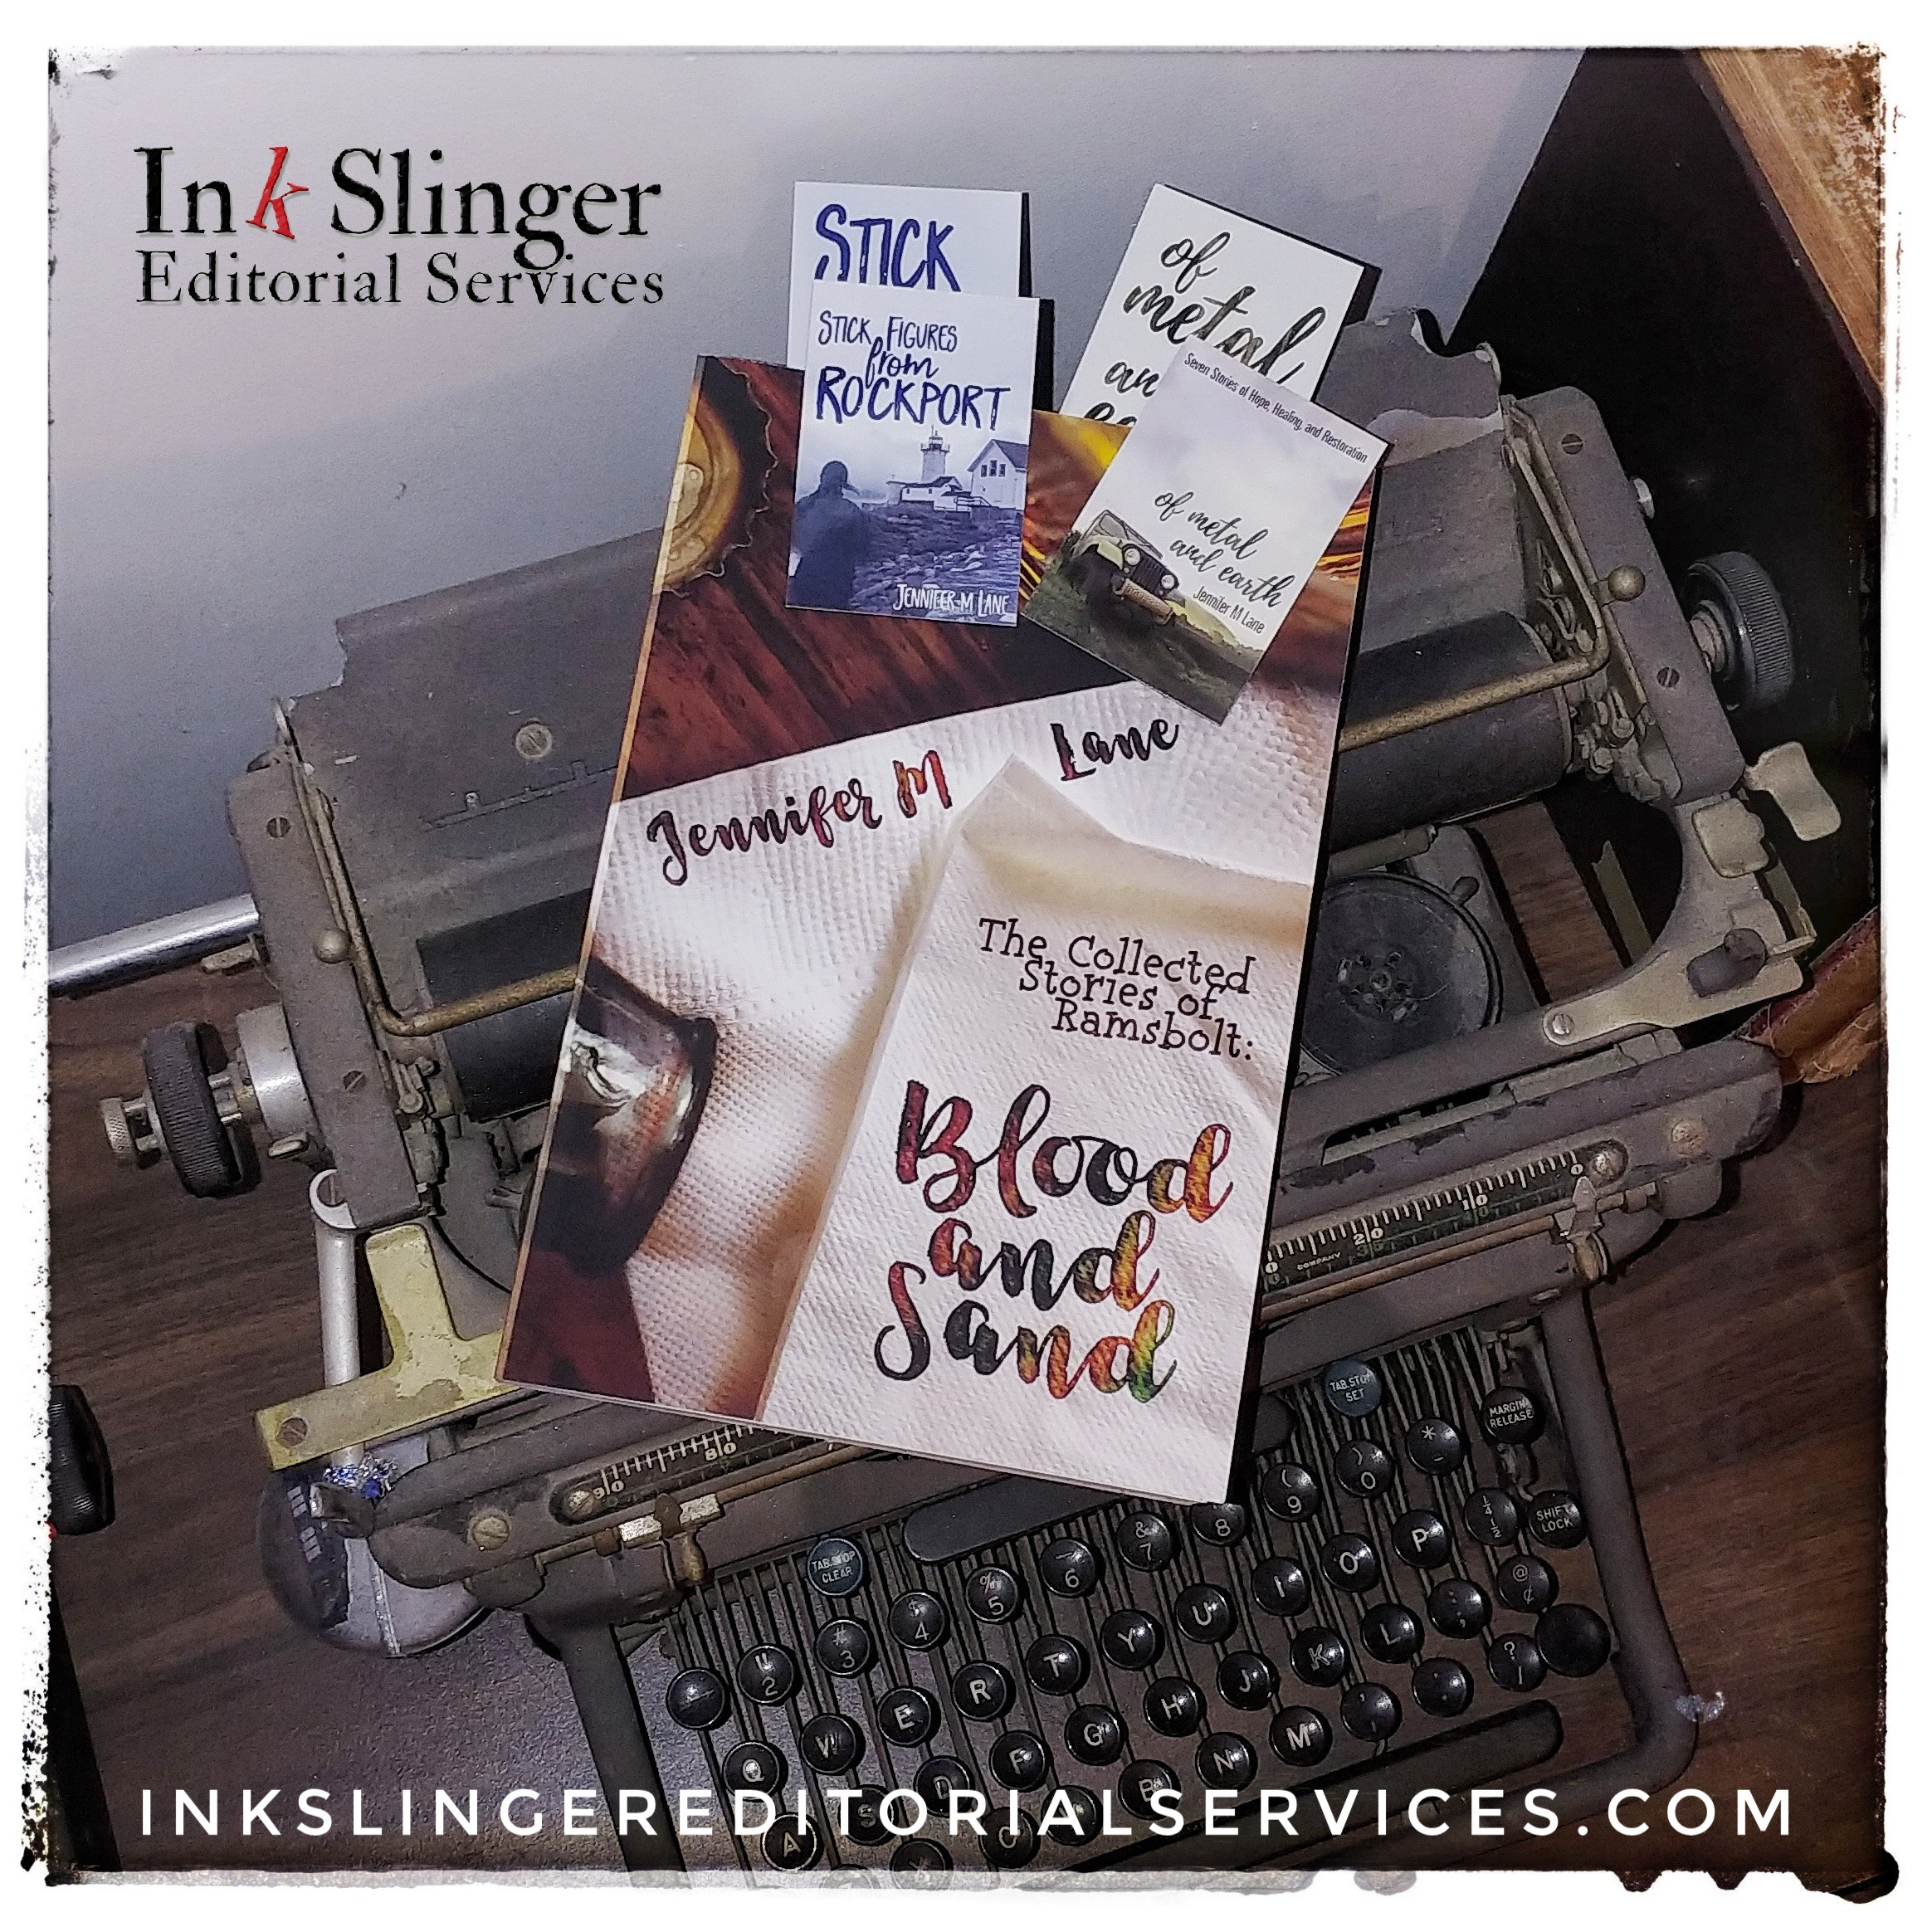 Jennifer M. Lane's book Blood and Sand on an antique typewriter with magnets from her first two books Stick Figures from Rockport and Of Metal and Earth. Ink Slinger Editorial Services